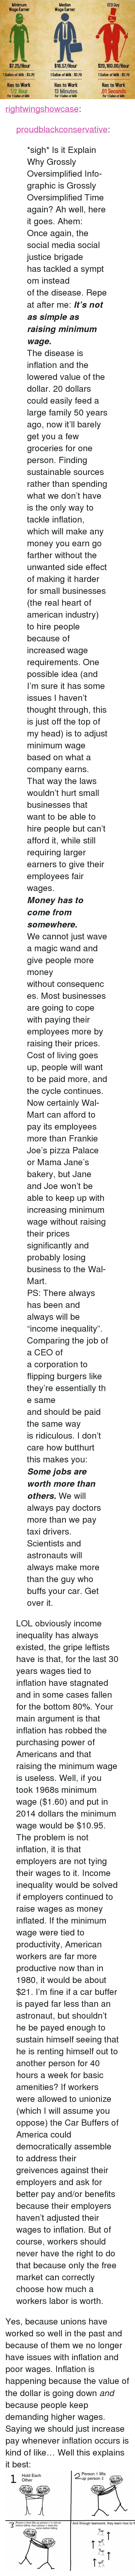 """America, Butthurt, and Family: Median  Wage Earner  CEO Guy  Minimum  Wage Earner  $7.25/Hour  1 Gallon of Milk:$3.70  Has to Work  1/2 Hour  $16.57/Hour  1 Gallon of Milk: $3.70  Has to Work  $20,160.00/Hour  1 Gallon of Milk: $3.70  Has to Work  01 Seconds  13 Minutes  For 1 Callon of Milk  For 1 Gallon of Milk  For 1 Callon of Milk <p><a class=""""tumblr_blog"""" href=""""http://rightwingshowcase.tumblr.com/post/97277711810/proudblackconservative-sigh-is-it-explain-why"""">rightwingshowcase</a>:</p> <blockquote> <p><a class=""""tumblr_blog"""" href=""""http://proudblackconservative.tumblr.com/post/97191615294/sigh-is-it-explain-why-grossly-oversimplified"""">proudblackconservative</a>:</p> <blockquote> <p>*sigh* Is it Explain Why Grossly Oversimplified Info-graphic is Grossly Oversimplified Time again? Ah well, here it goes. Ahem:</p> <p><span><span>Onceagain, the social media social justice brigade hastackledasymptominstead ofthedisease.Repeat after me: <em><strong>It's not assimple as raising minimum wage. </strong></em></span></span></p> <p><span><span>The disease is inflation and the lowered value of the dollar. 20 dollars could easily feed a large family 50 years ago, now it'll barely get you a few groceries for one person. Finding sustainable sources rather than spending what we don't have is the only way to tackle inflation, which will make any money you earn go farther without the unwanted side effect of making it harder for small businesses (the real heart of american industry) to hire people because of increased wage requirements. One possible idea (and I'm sure it has some issues I haven't thought through, this is just off the top of my head) is to adjust minimum wage based on what a company earns. That way the laws wouldn't hurt small businesses that want to be able to hire people but can't afford it, while still requiring larger earners to give their employees fair wages.</span></span></p> <p><em><strong><span><span>Money has to come from somewhere.</span></span></strong></"""